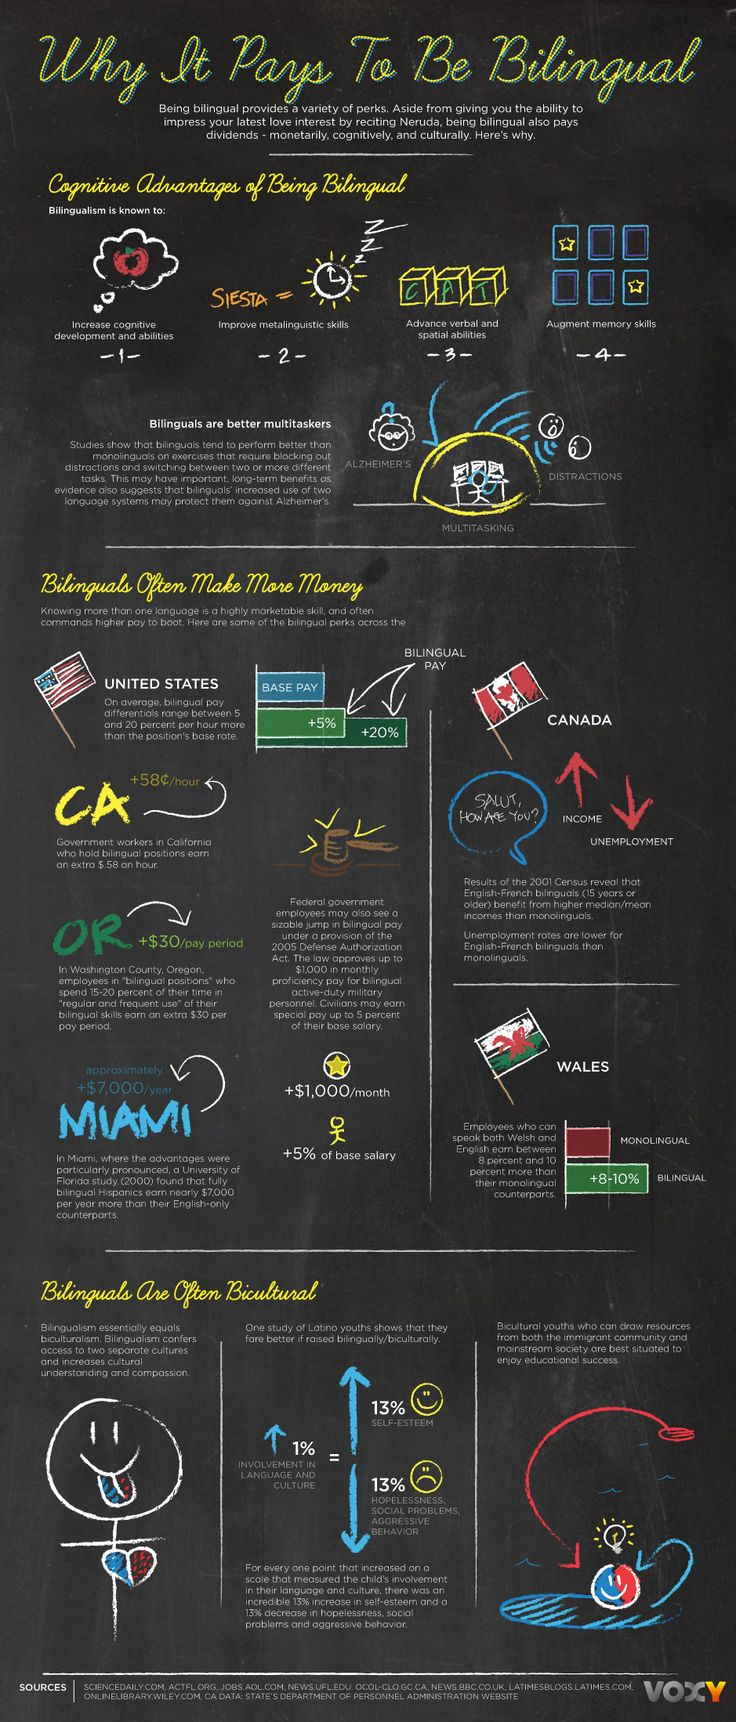 Why It Pays To Be Bilingual | Photo @ Voxy Blog. http://voxy.com/blog/2011/02/why-it-pays-to-be-bilingual-infographic